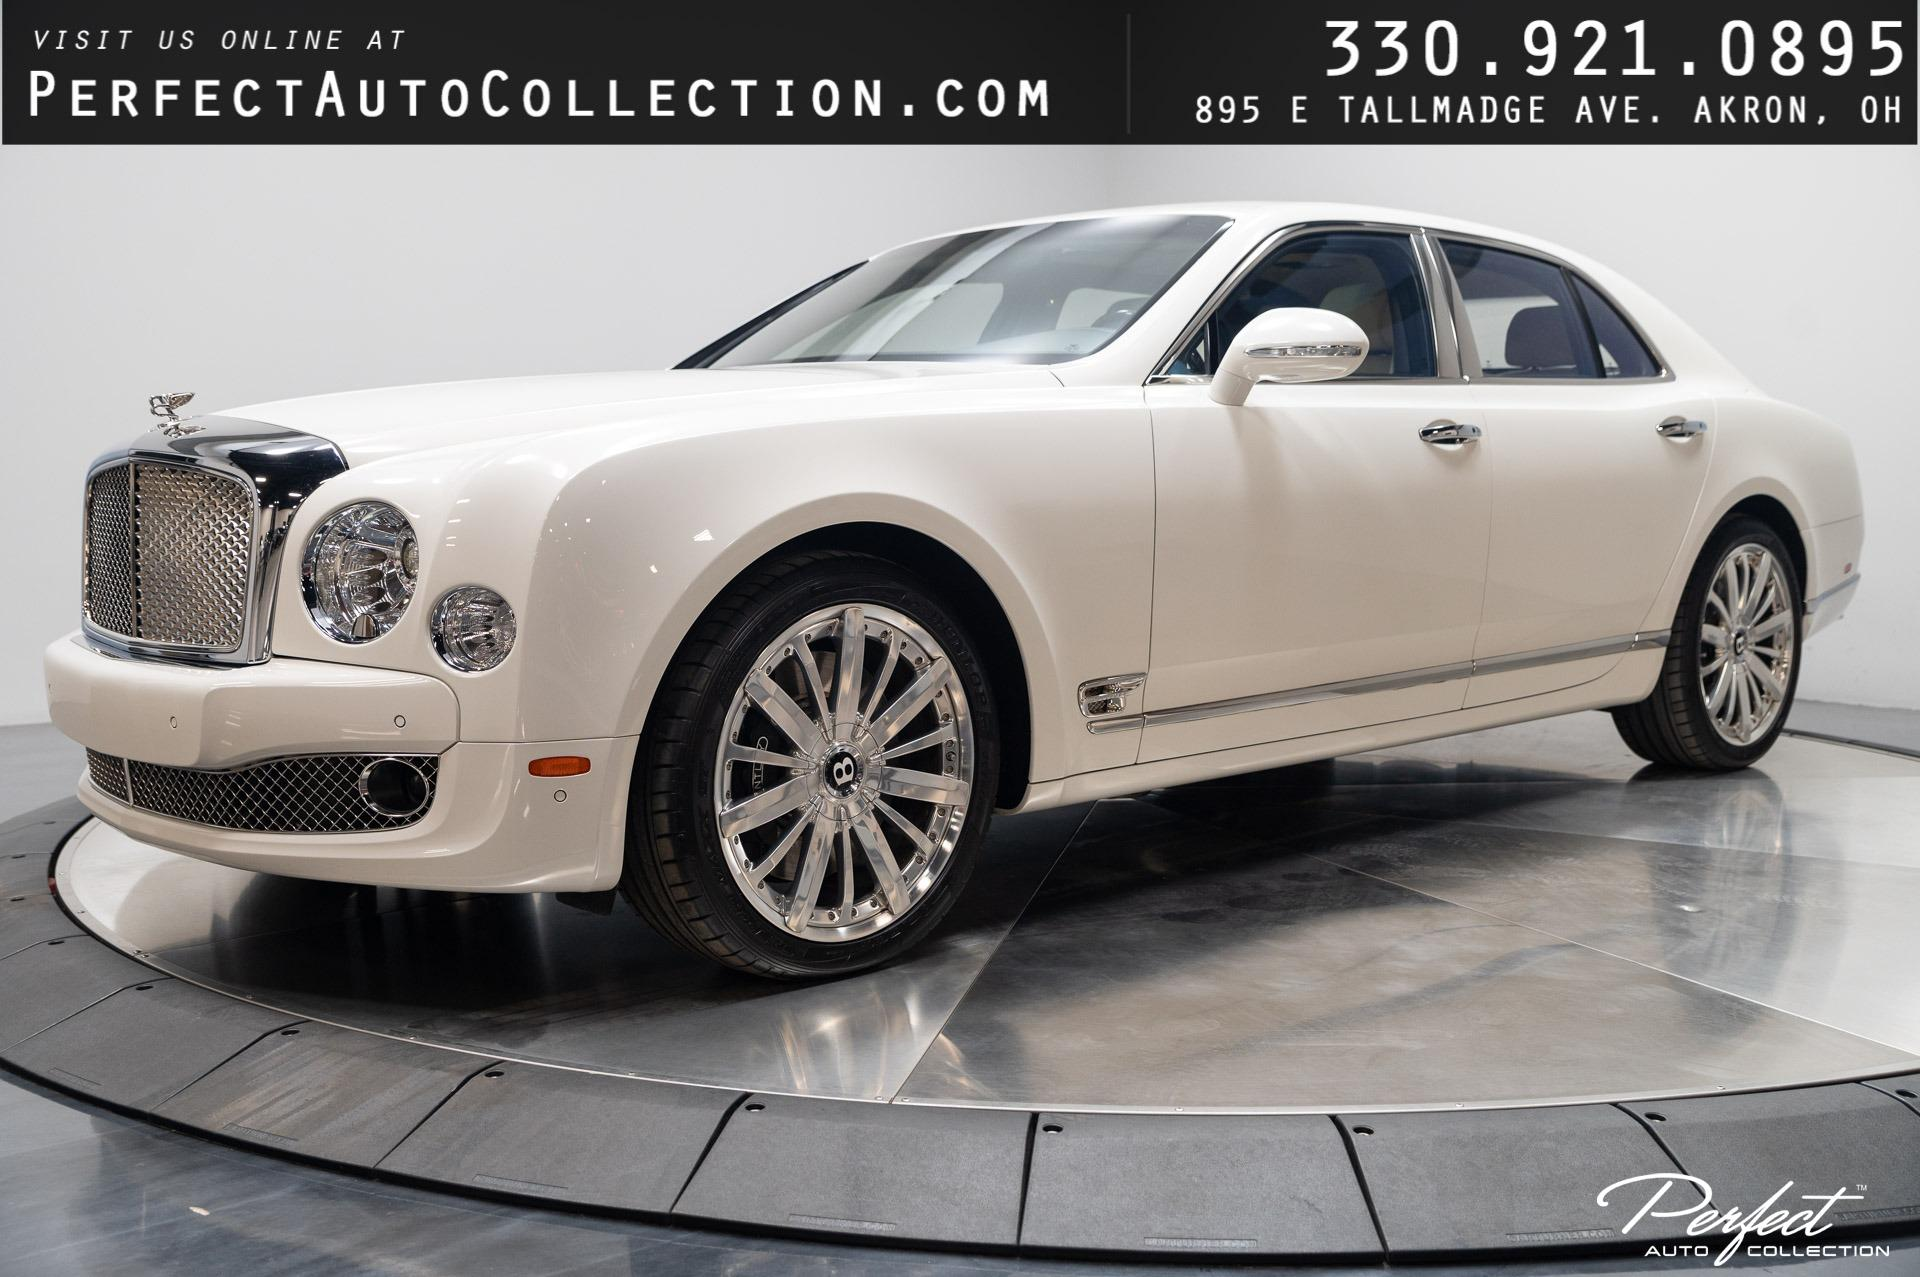 Used 2013 Bentley Mulsanne Mulliner Driving Specification for sale $129,495 at Perfect Auto Collection in Akron OH 44310 1